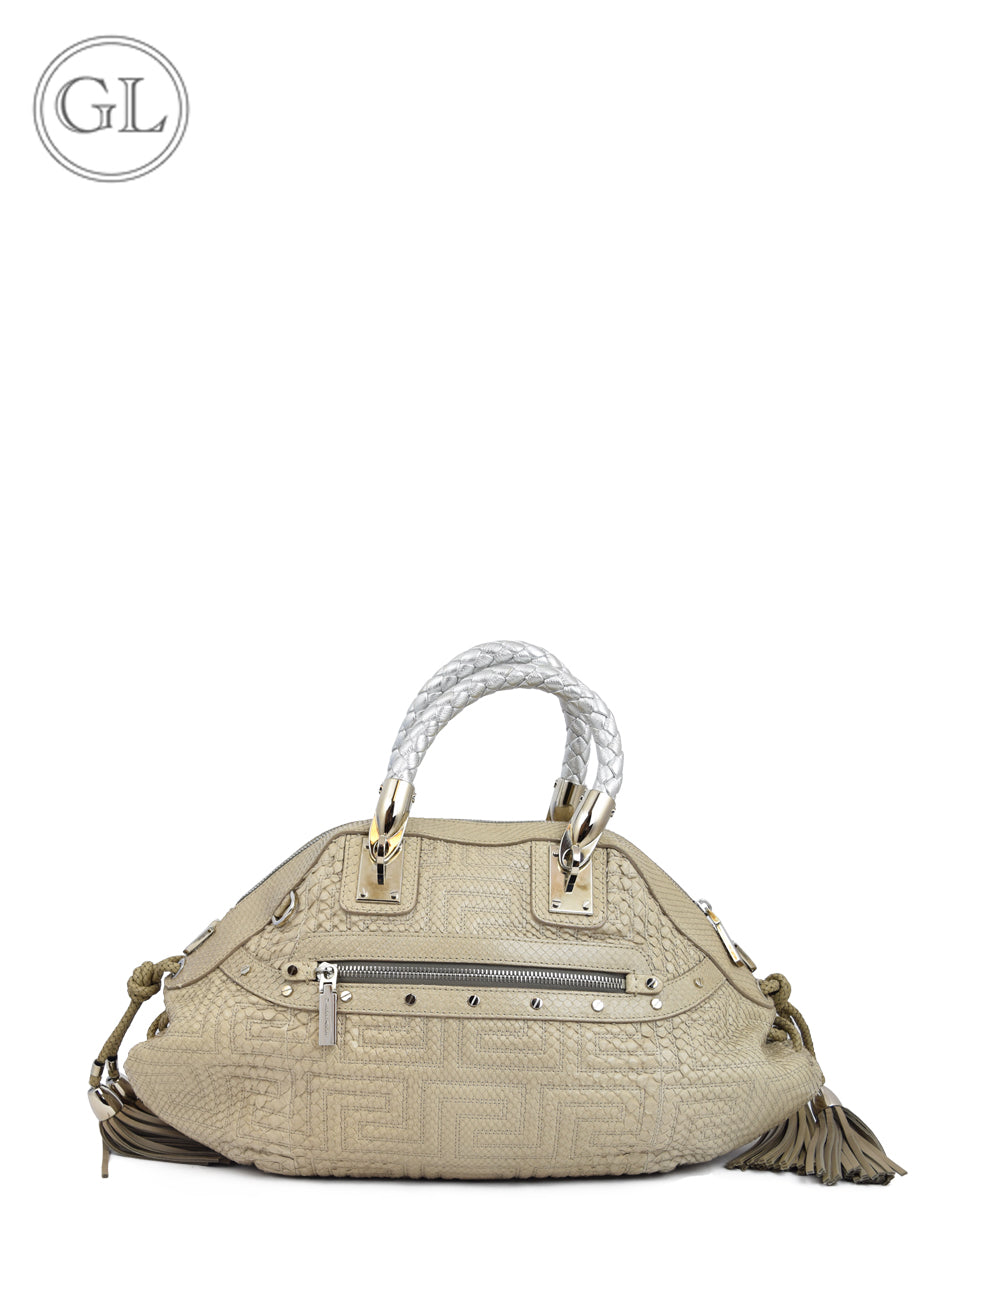 Gianni Versace Beige Python Leather Bag